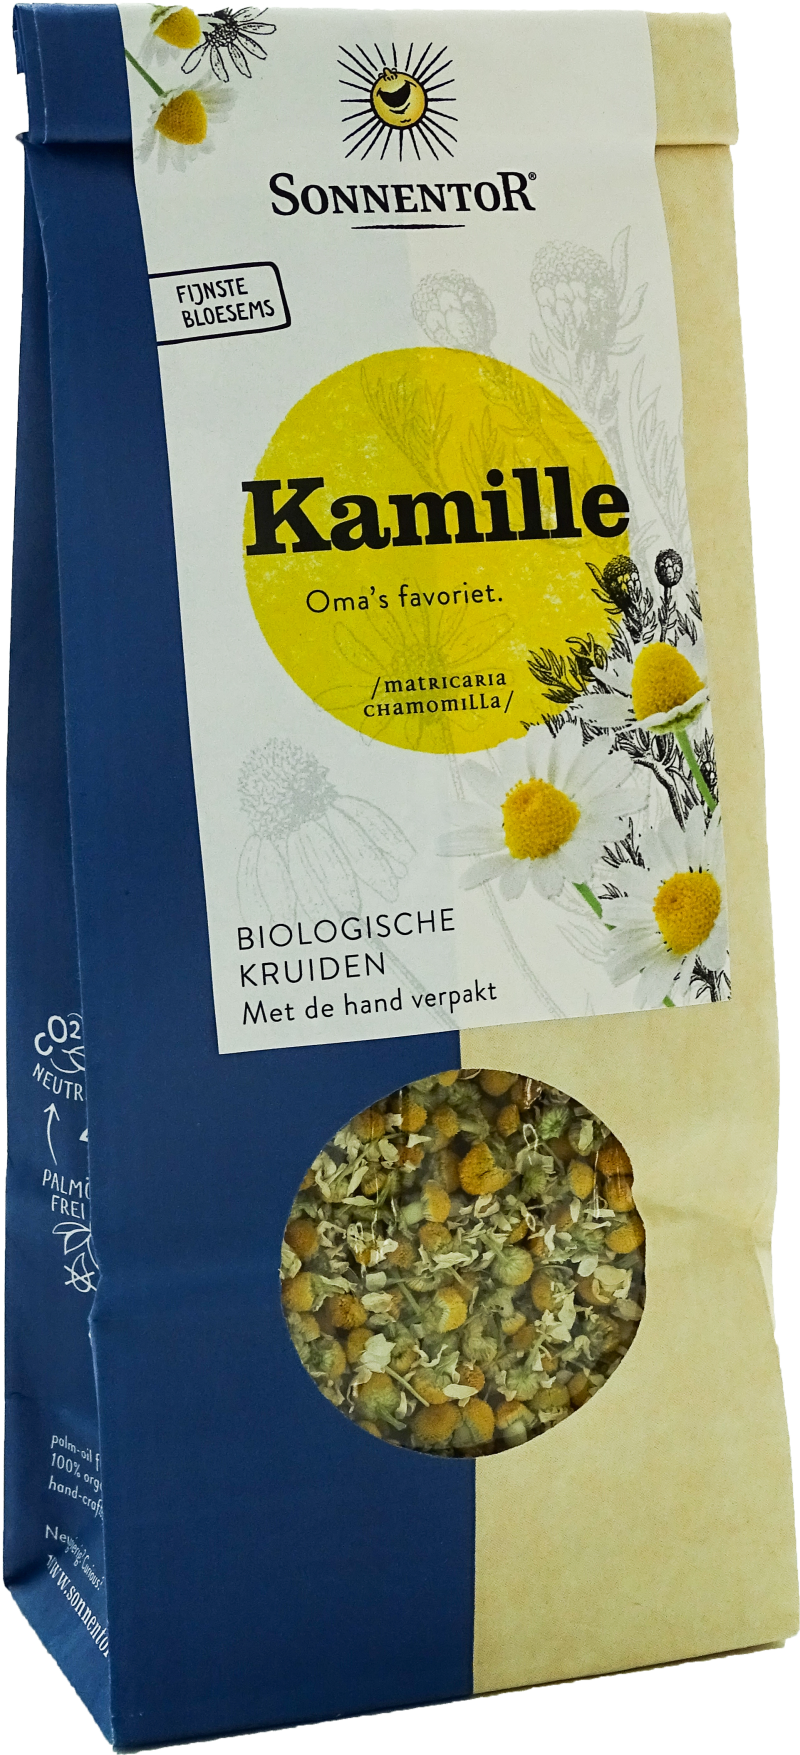 Sonnentor Kamille thee los 50g - 00206